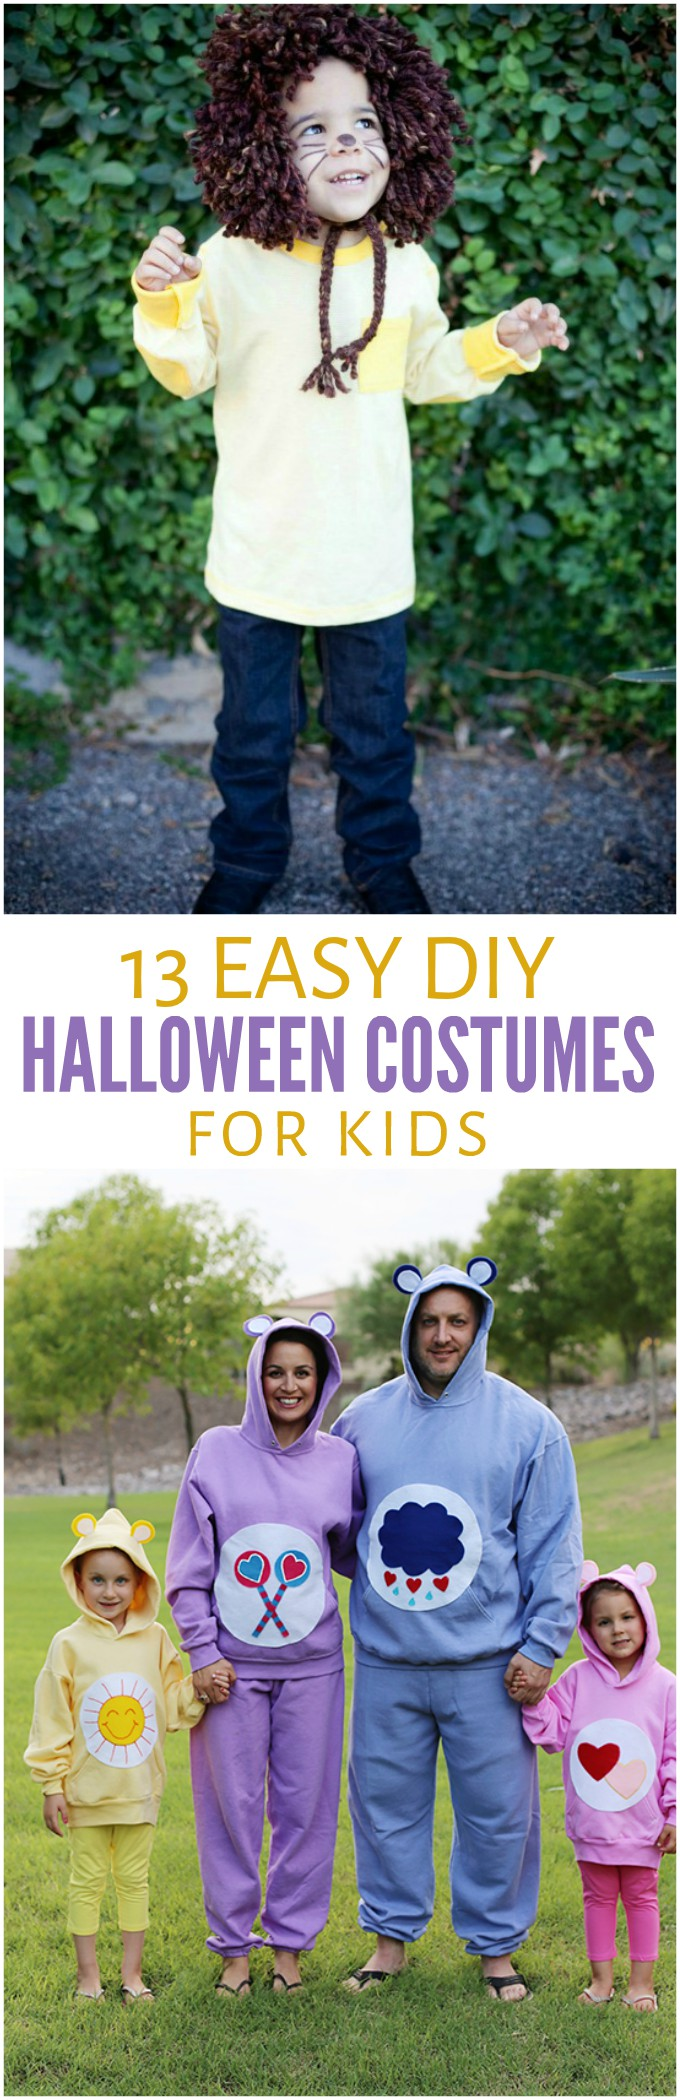 13 Easy DIY Halloween Costumes for Kids